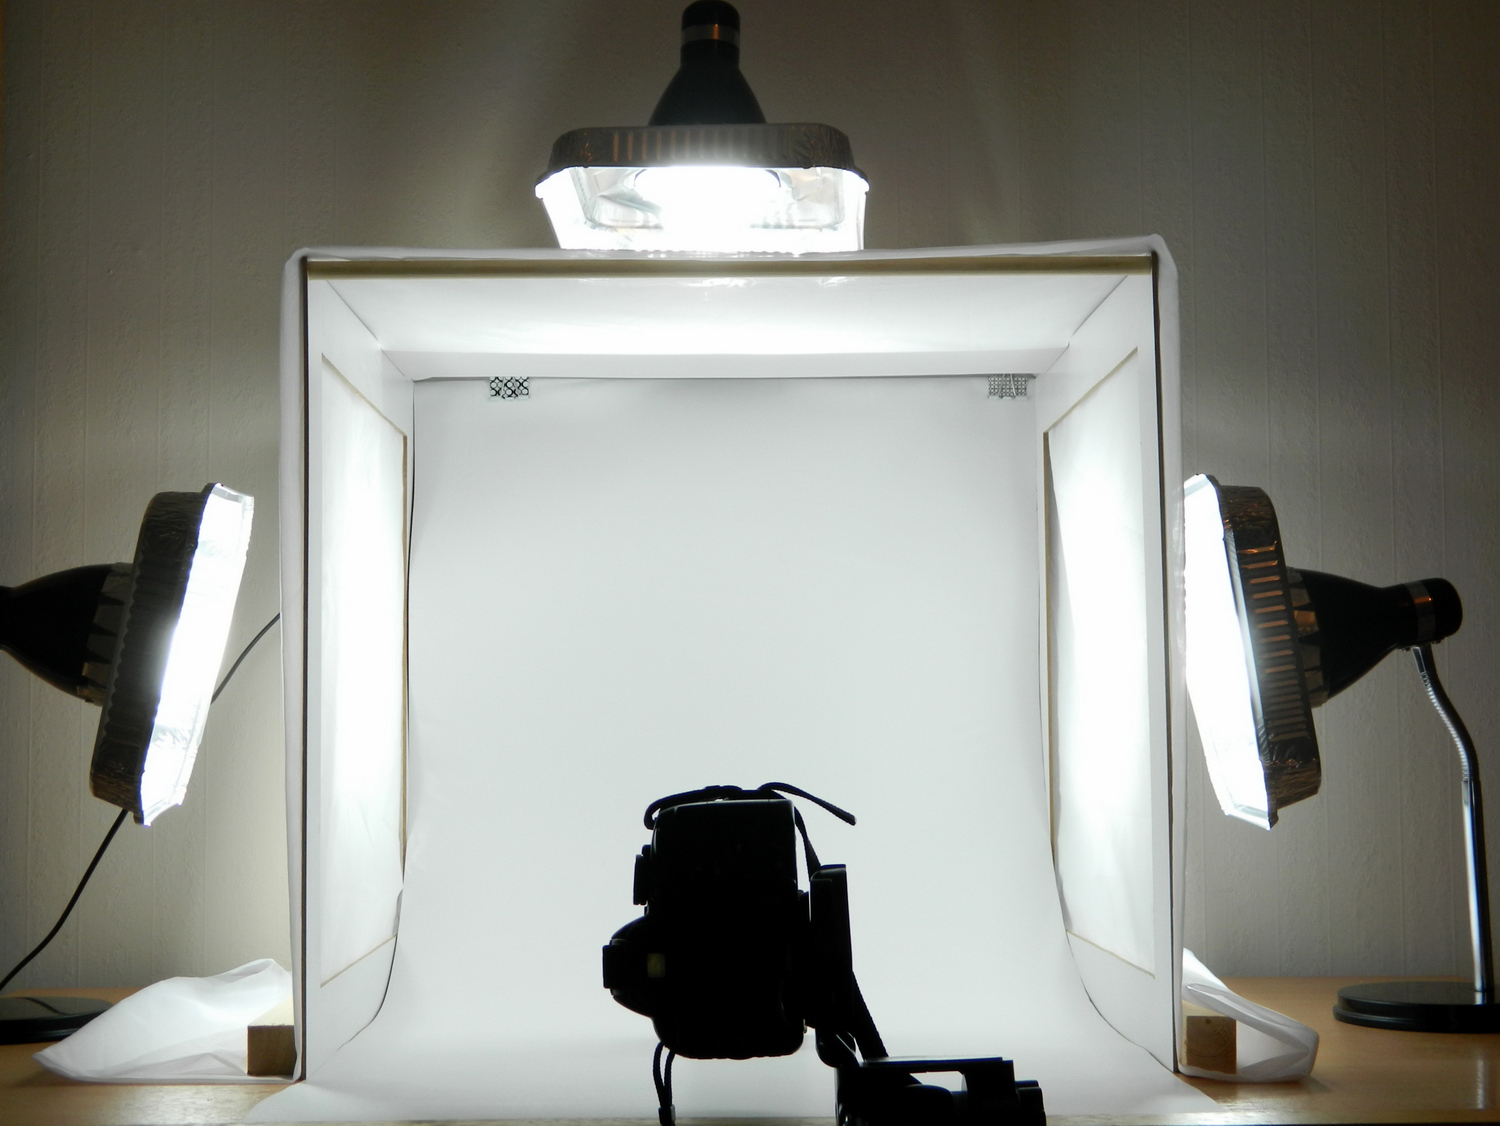 Image: Light tents can easily be made at home by constructing a simple frame and covering it with tr...